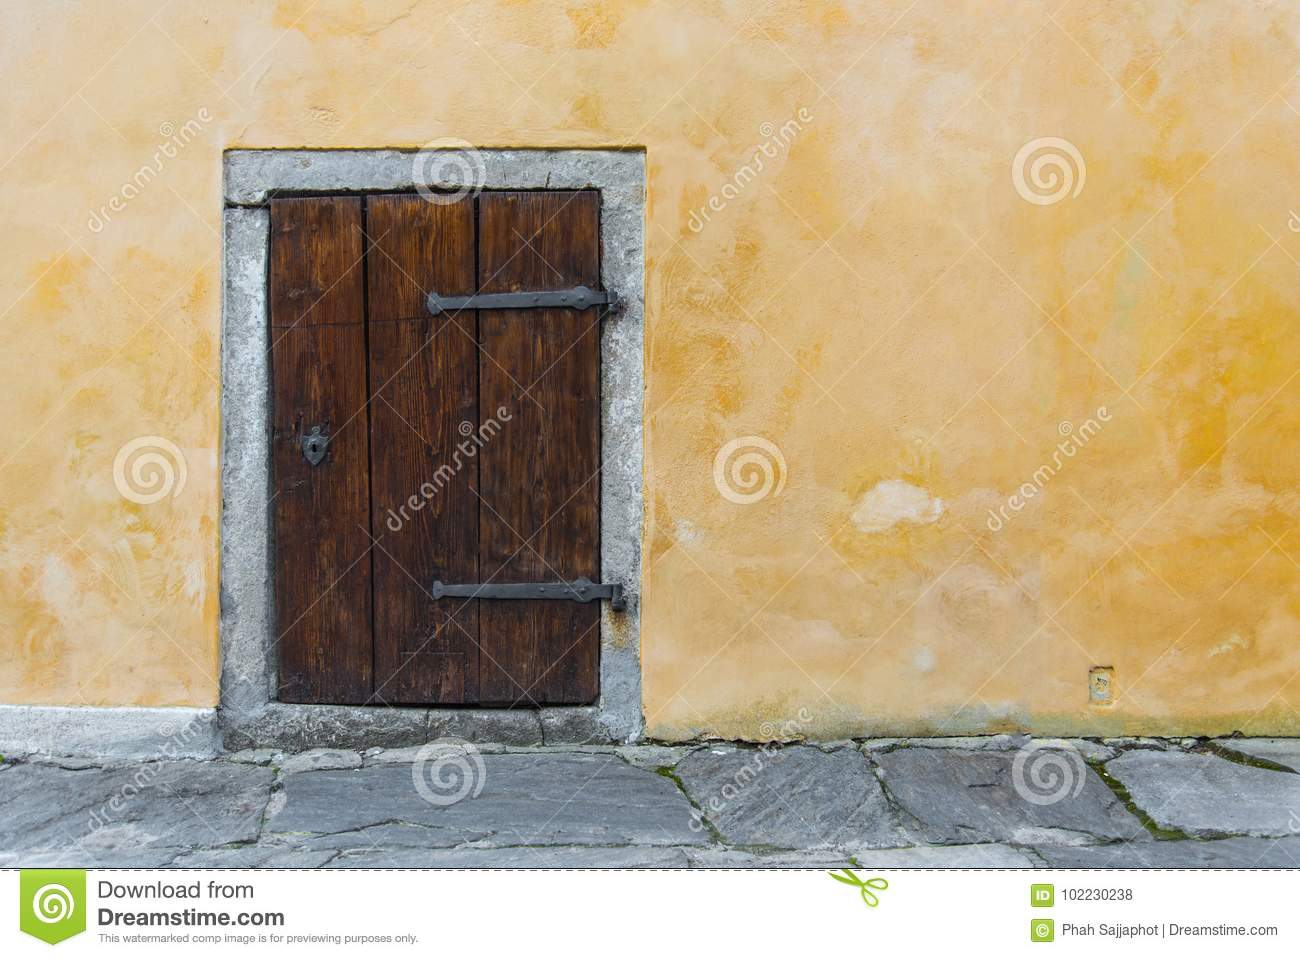 Old Wooden Small Door On The Yellow Rustic Wall Stock Photo - Image ...